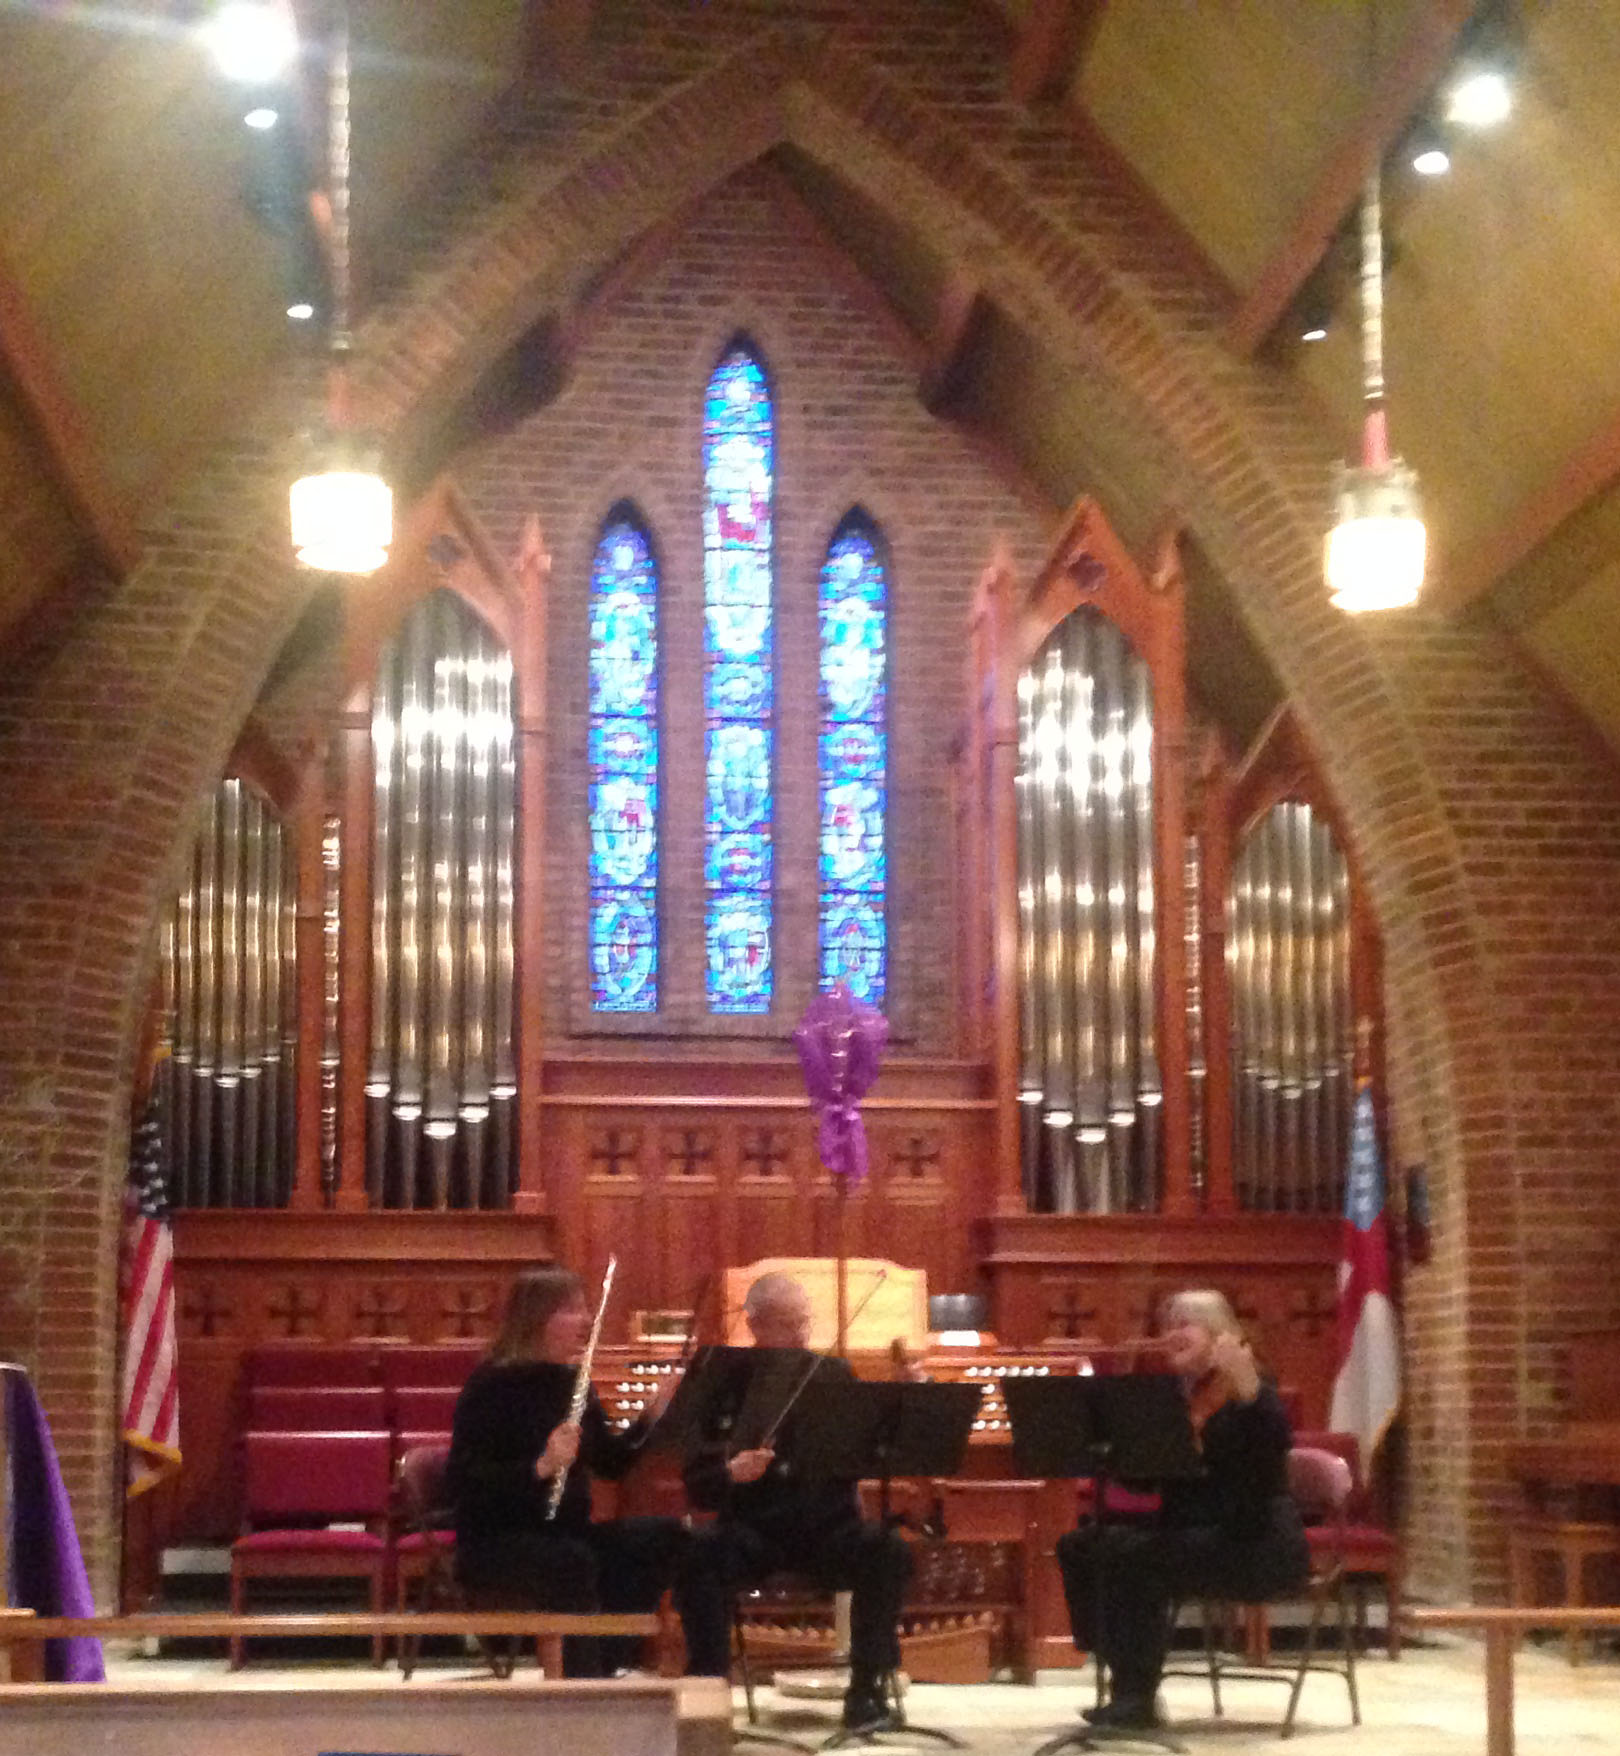 <i>Podcast: What's Up Bainbridge:</i> <br>Intimate Music Series returns Jan 6th to St Barnabas Church